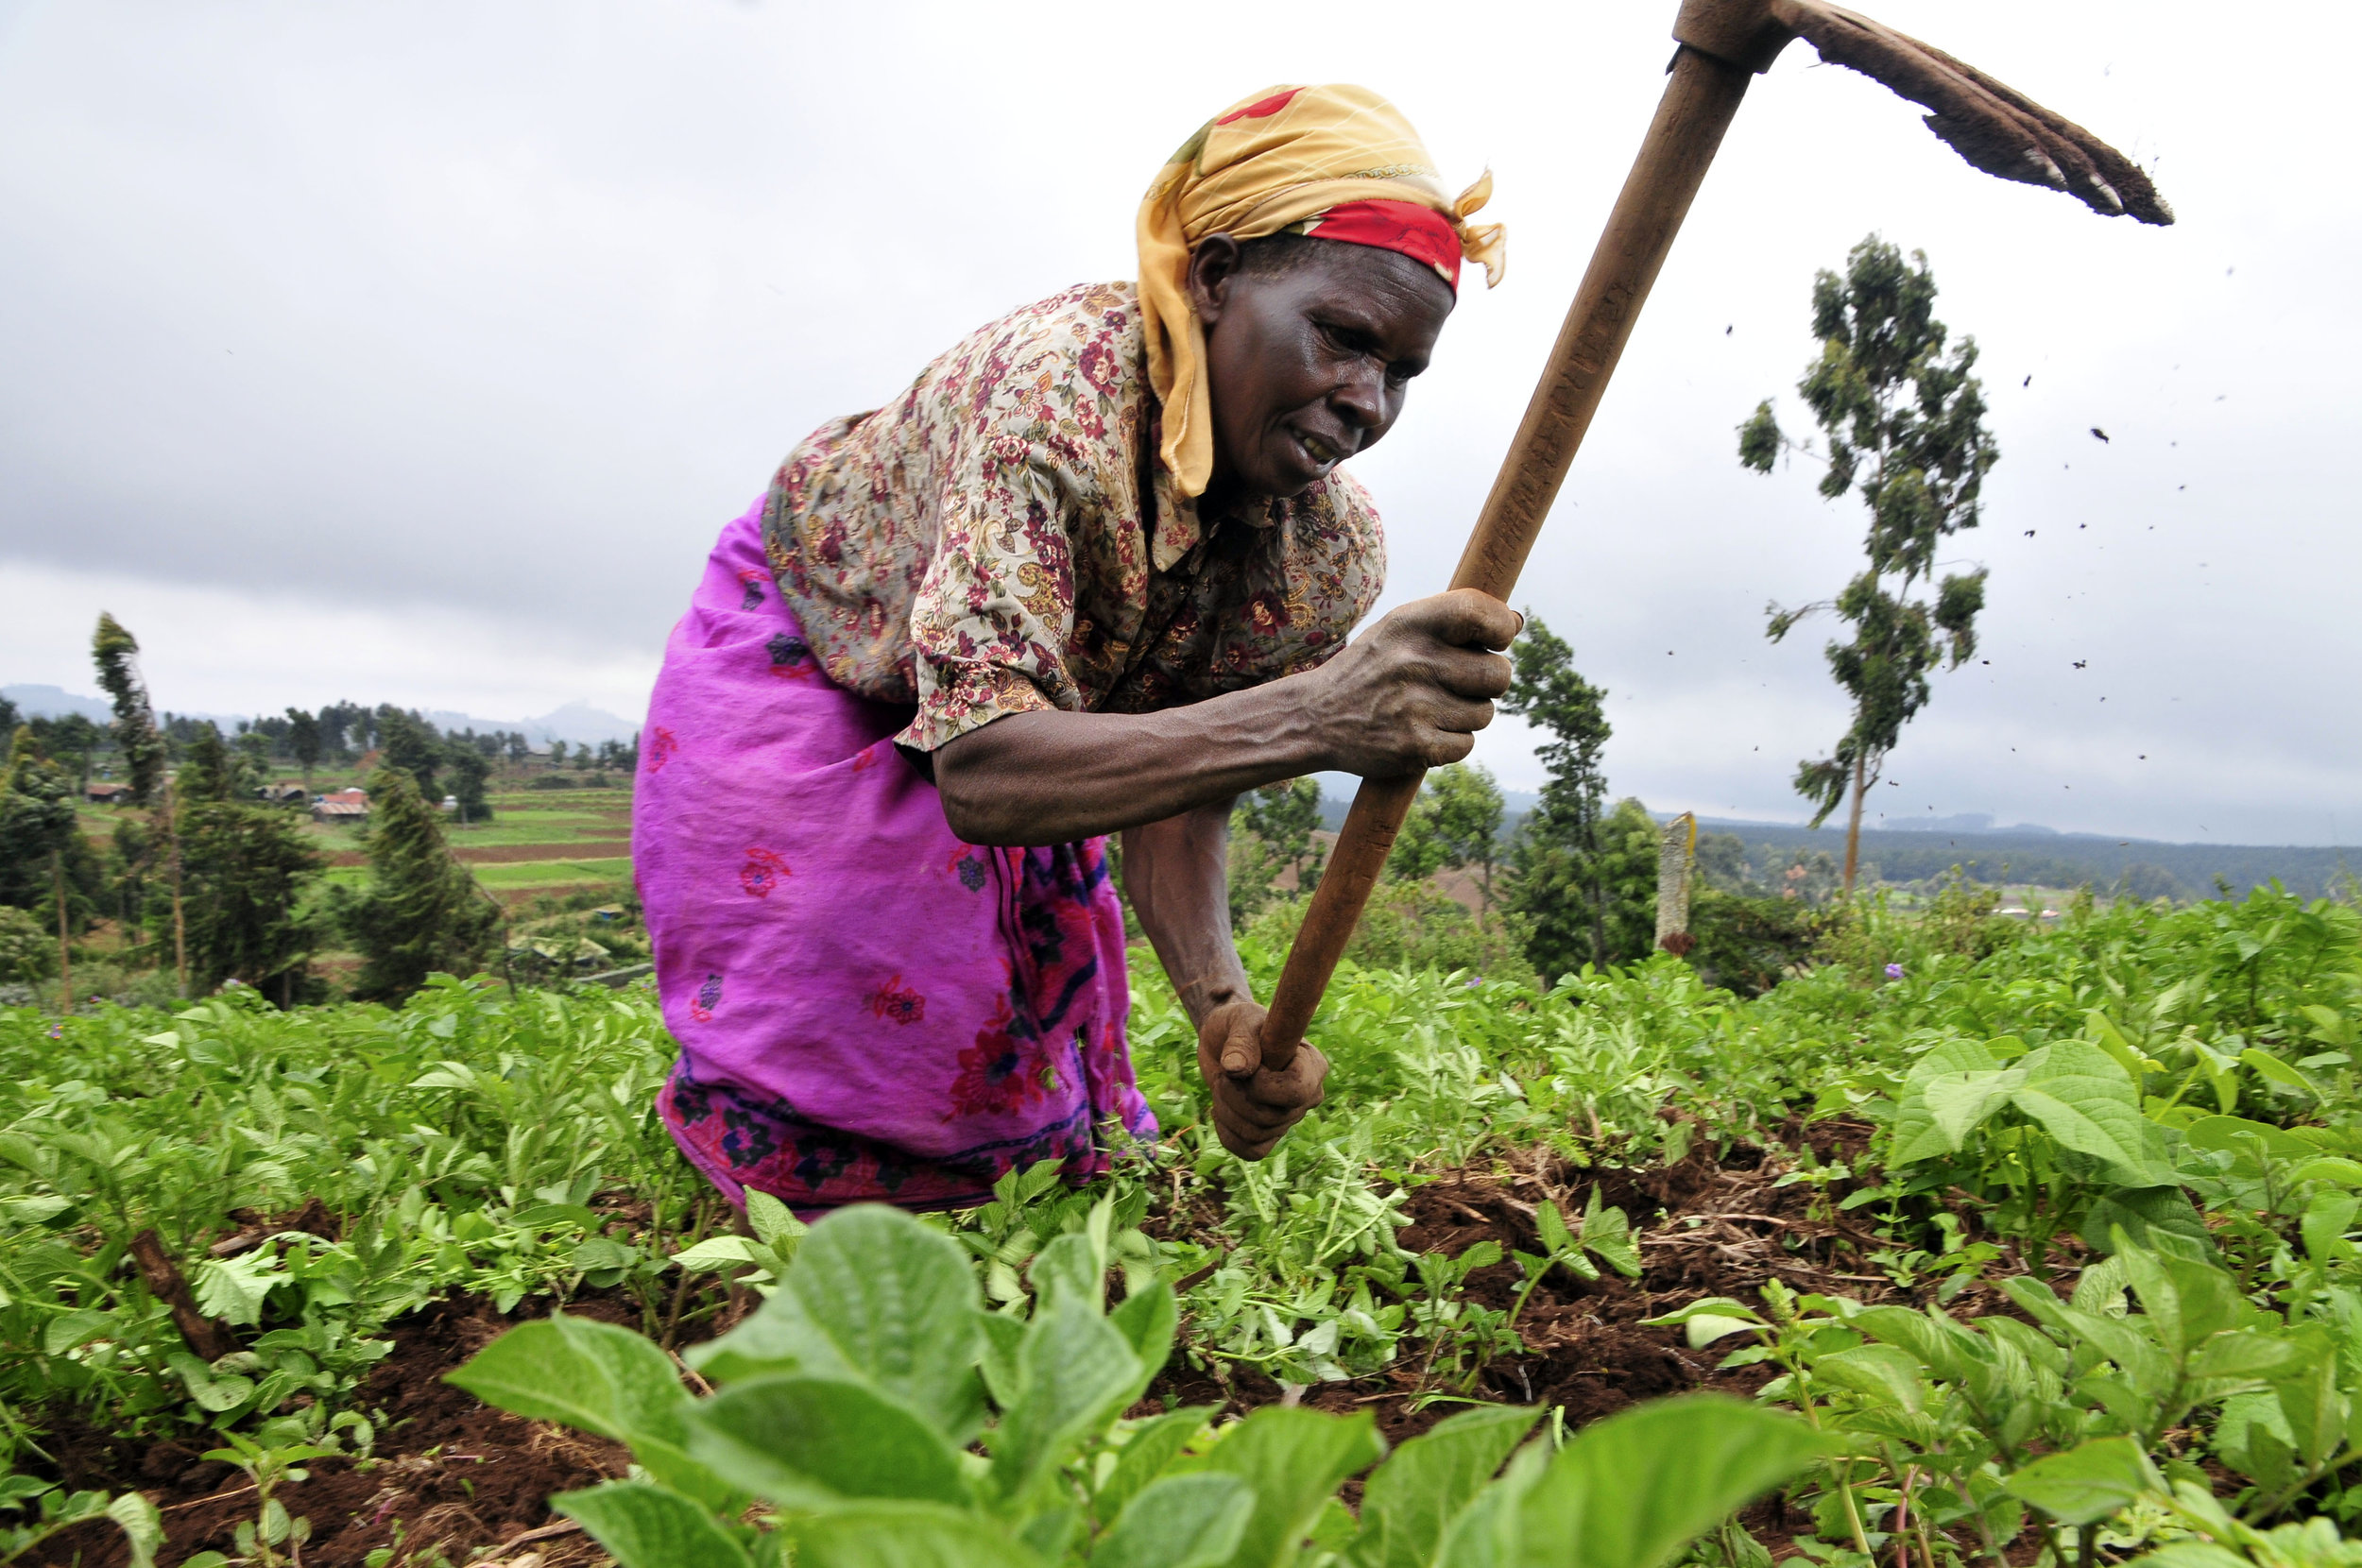 A Nigerian woman works on her crops.